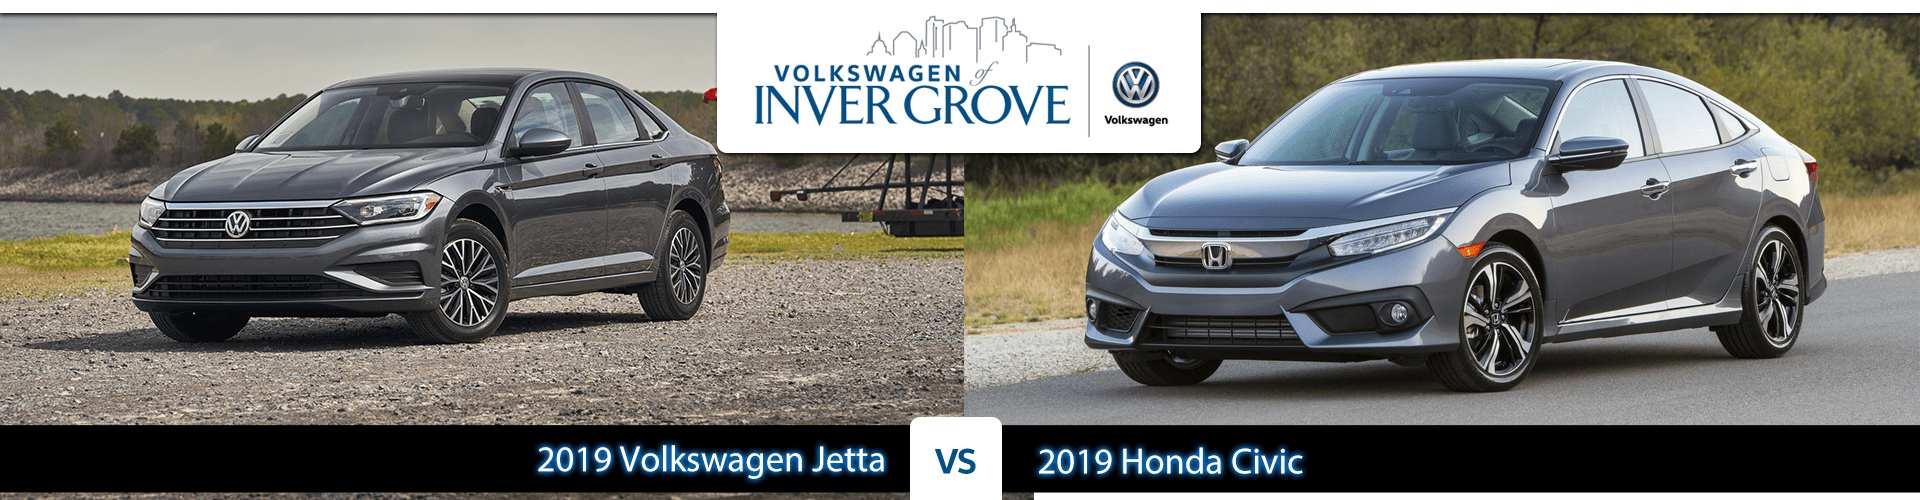 32 The 2019 Volkswagen Jetta Vs Honda Civic Speed Test